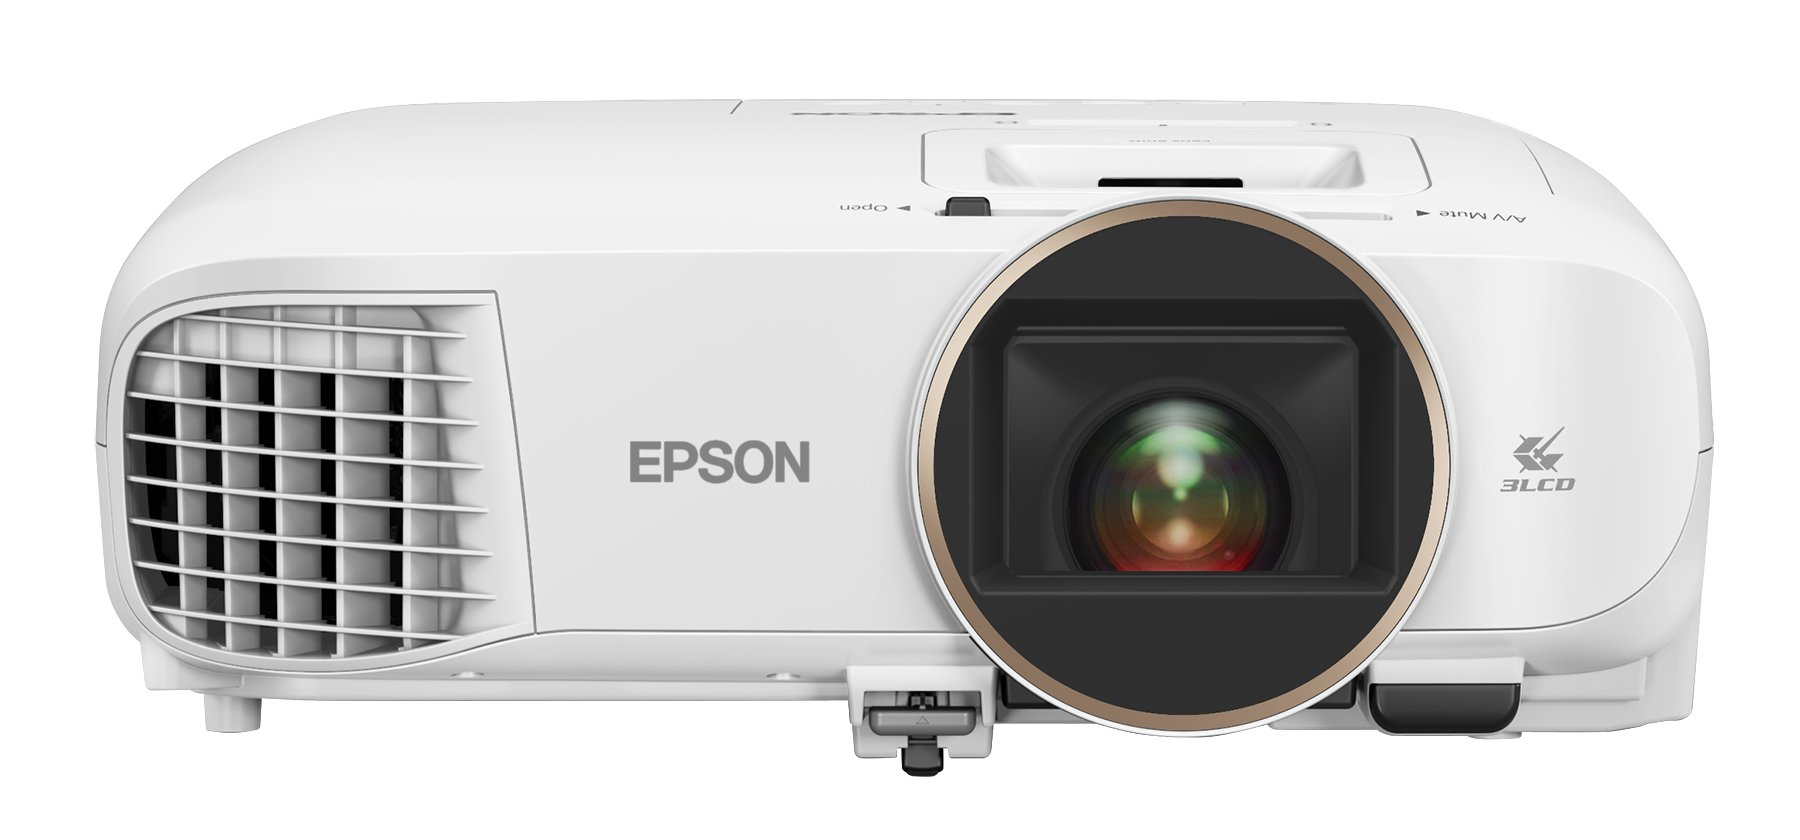 Epson Home Cinema 2150, Wireless, Full HD, 1080p, 2,500 lumens color brightness (color light output), 2,500 lumens white brightness (white light output), 2x HDMI (1 MHL), Miracast, 3LCD projector by Epson (Image #2)